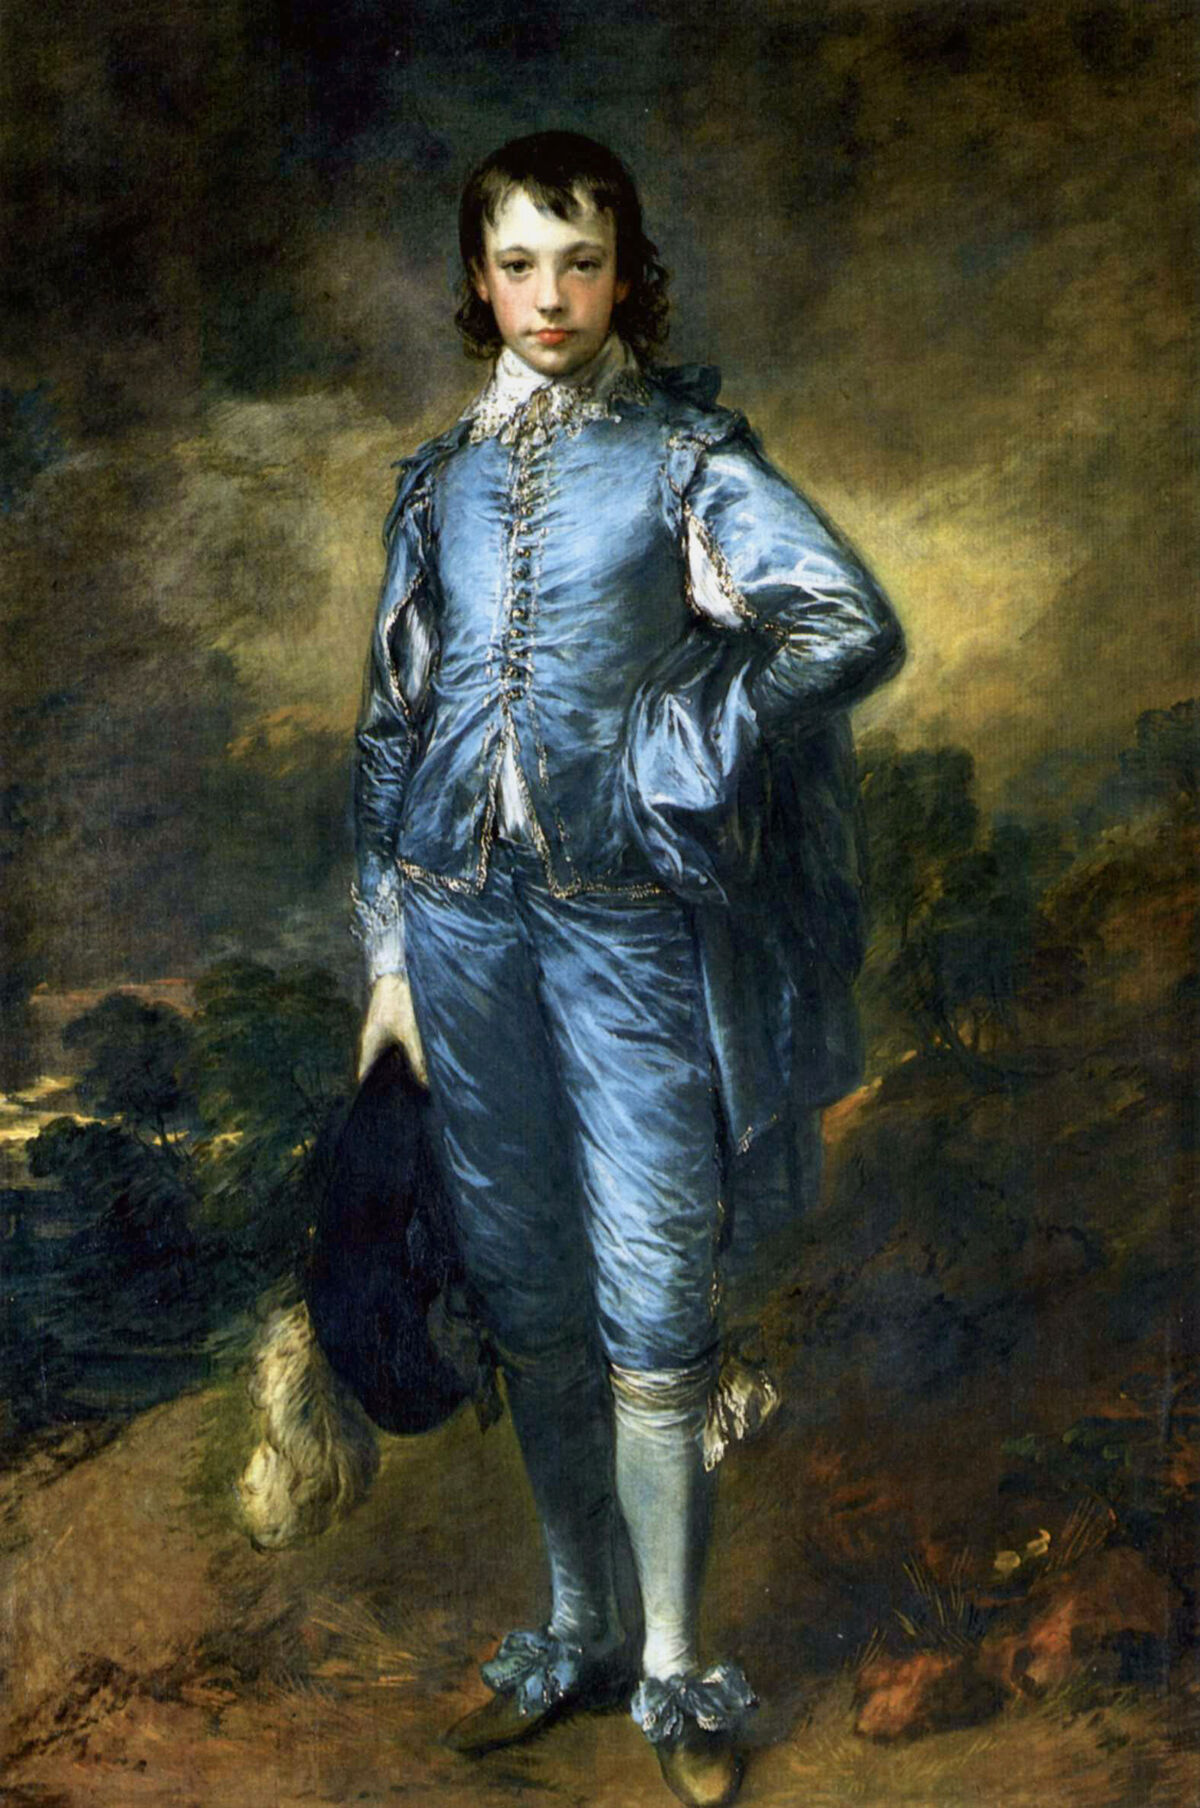 Thomas Gainsborough, The Blue Boy, Portrait of Jonathan Buttall, ca. 1770. Image via Wikimedia Commons.